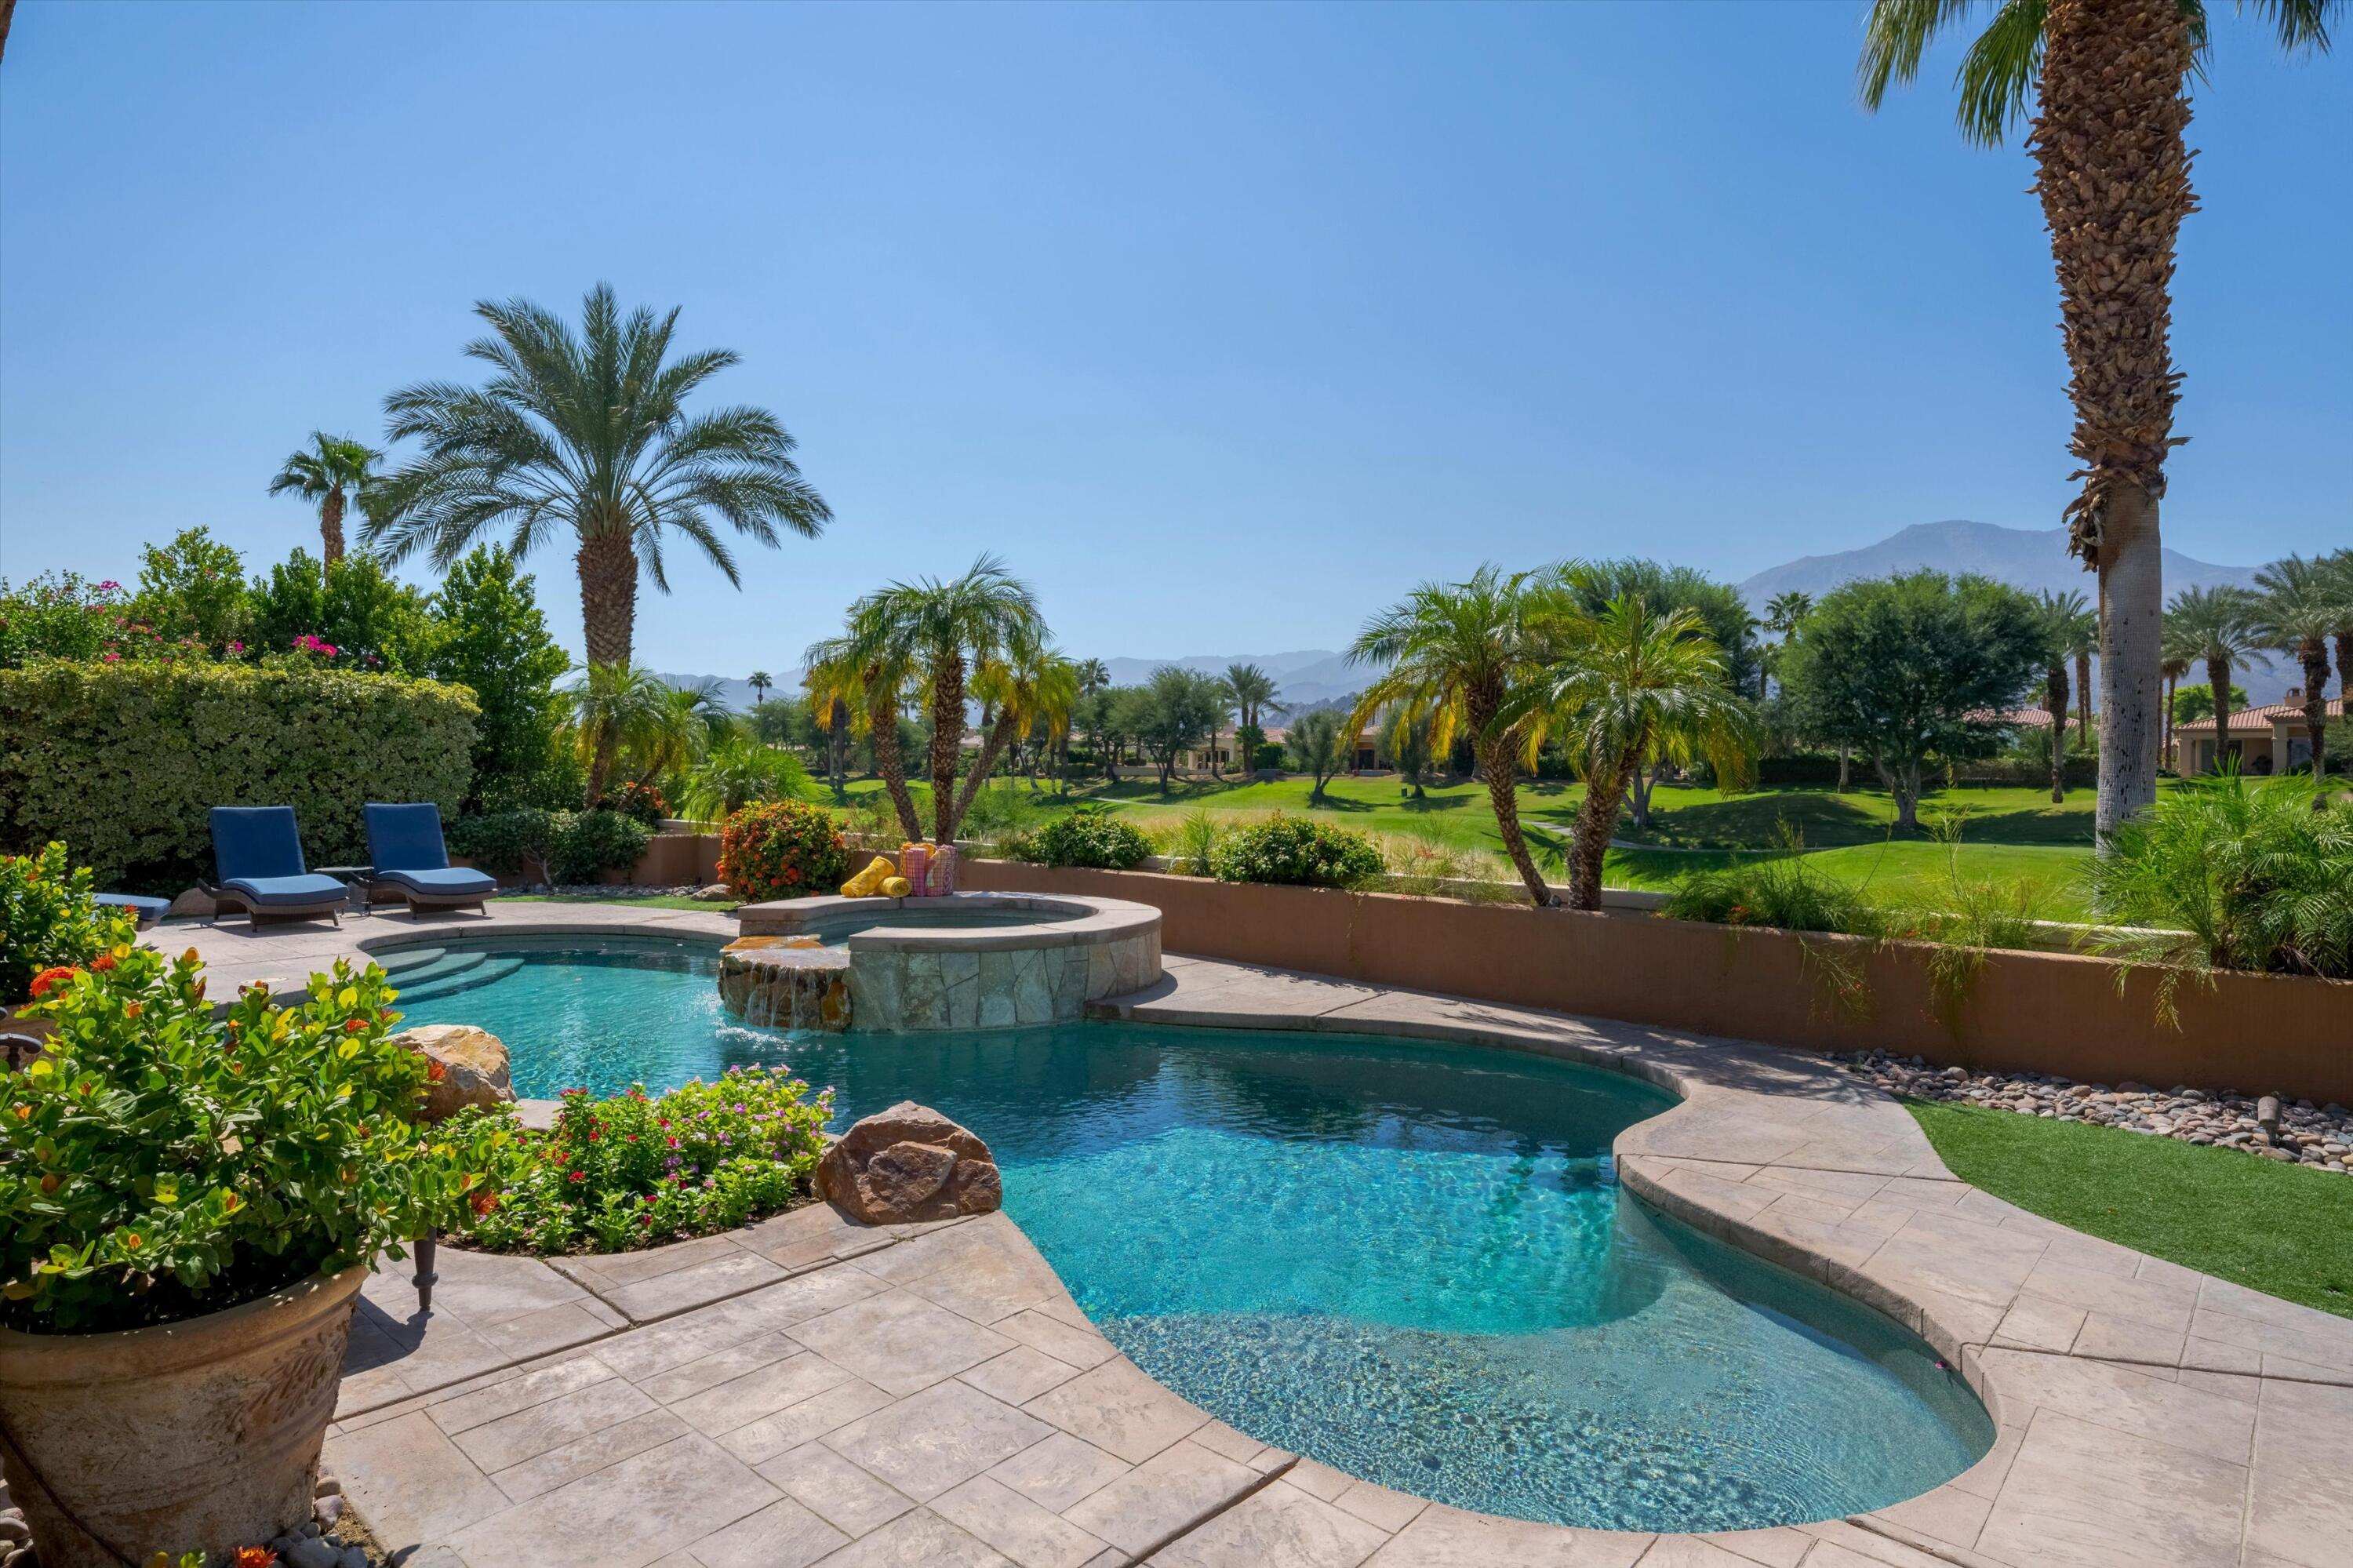 Spectacular Southwestern Mountain Views! Enjoy the American Express Golf Tournament from the amazing poolside patio! This gorgeous home at 2974 sq.ft, with 3BDs & 3.5BAs plus private pool & spa, offers gracious resort living at it's finest with an open-floor plan perfect for entertaining. Glass doors and windows provide sweeping panoramic mountain and golf course views! Beautifully landscaped gated courtyard with fireplace. Inside this stunning home is living room with fireplace, spacious master bedroom suite with sitting area, and large master bathroom with two walk-in closets, dining room area (currently being used as conversation area), wet-bar with granite countertops, ceiling mounted glass door-cabinets plus bar & wine refrigerators, stainless steel sink with garbage disposal and icemaker, media/den area, chef's kitchen complete with island, granite countertops, stainless steel appliances including 5 burner gas cooktop with downdraft range hood, warming drawer, double ovens, microwave, dishwasher, French door refrigerator and trash compactor, casual dining area offering some of the best seats in the house to enjoy that view, stone floors, ceiling fans, central vacuum system, much more. Marvelous backyard offers pebble tec pool and spa with cascading waterfall, putting green, electric patio awnings and built-in BBQ. Offered furnished per inventory.